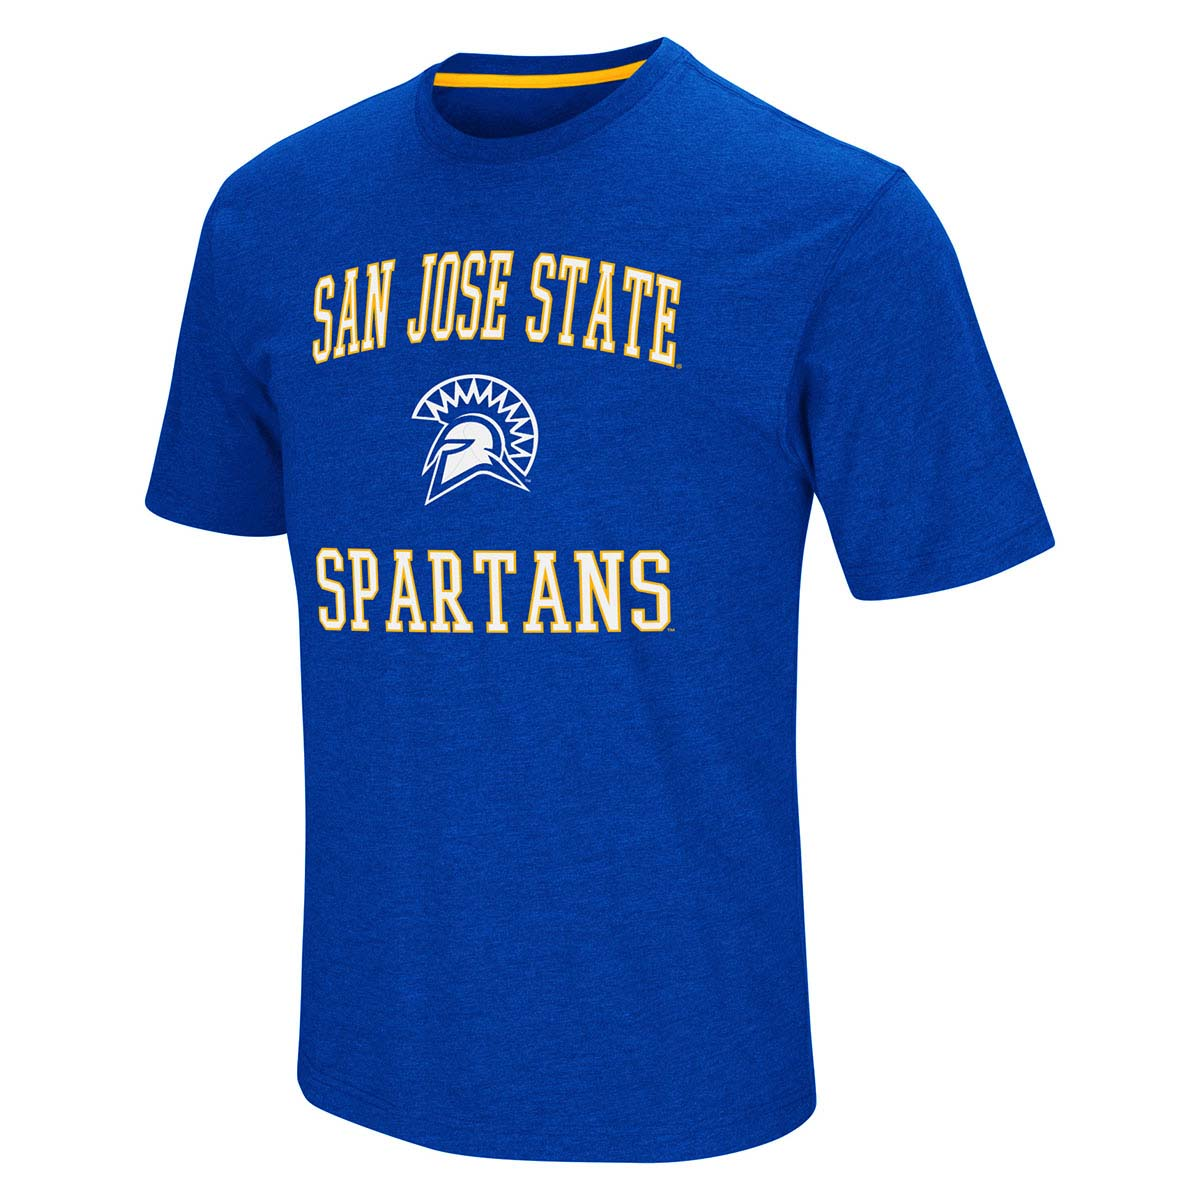 San Jose State Spartans NCAA Fun Run Tee (Royal)